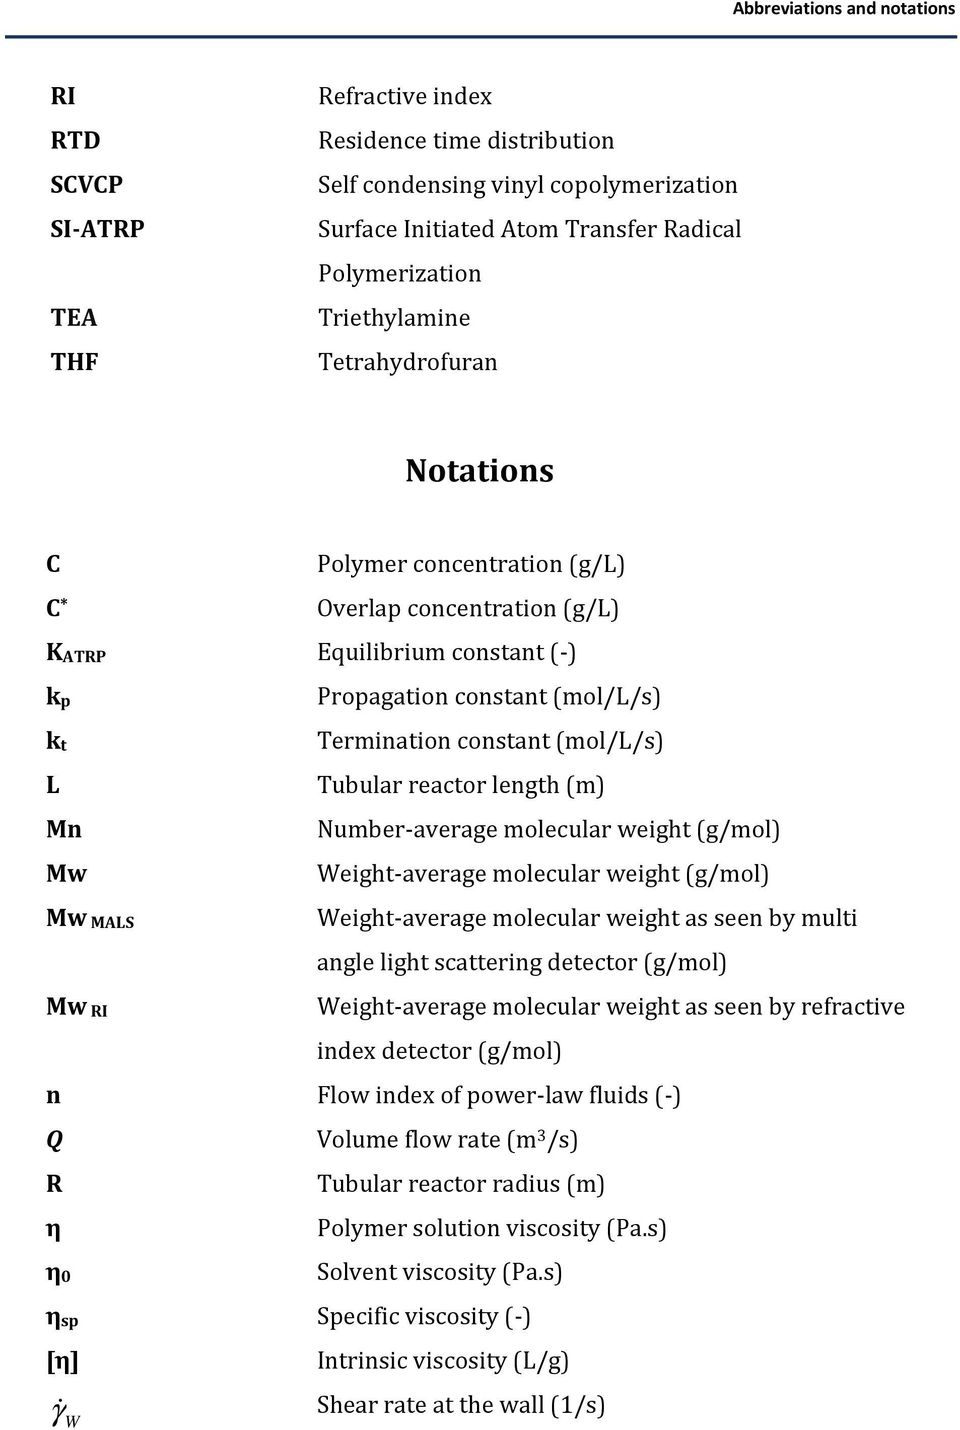 Termination constant (mol/l/s) Tubular reactor length (m) Number-average molecular weight (g/mol) Weight-average molecular weight (g/mol) Weight-average molecular weight as seen by multi angle light